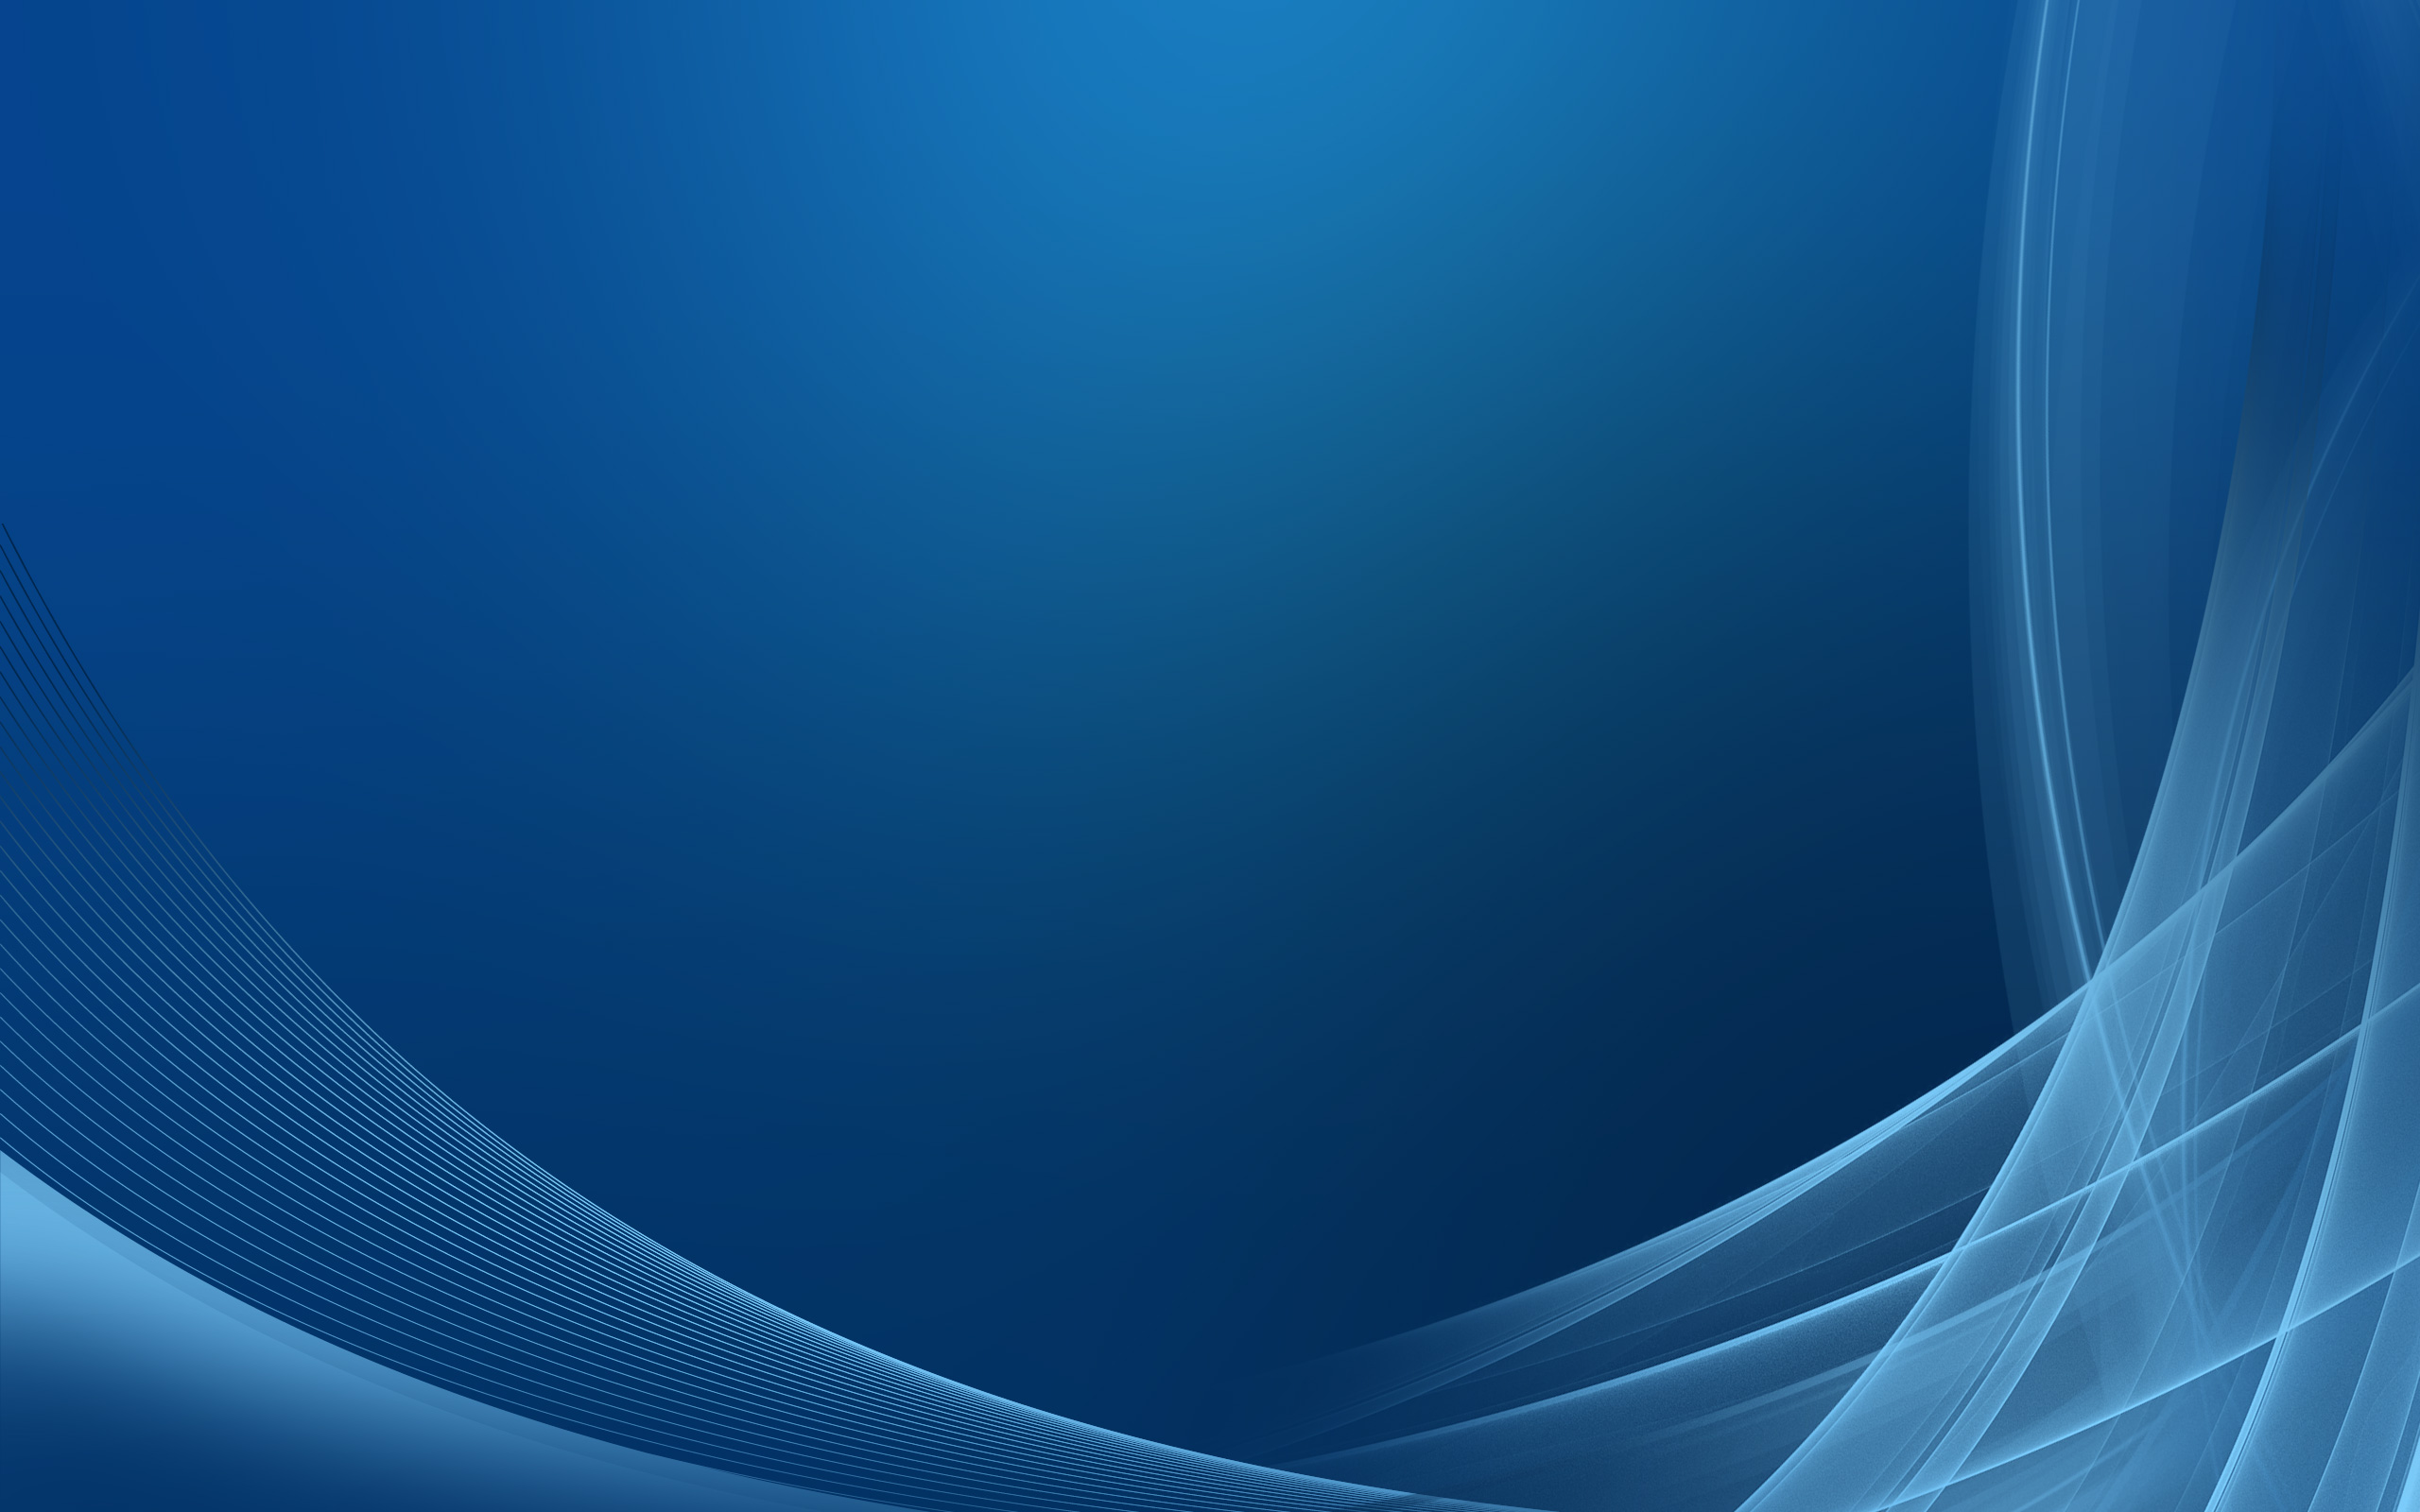 HQ Blue Abstract Wallpaper 2560x1600